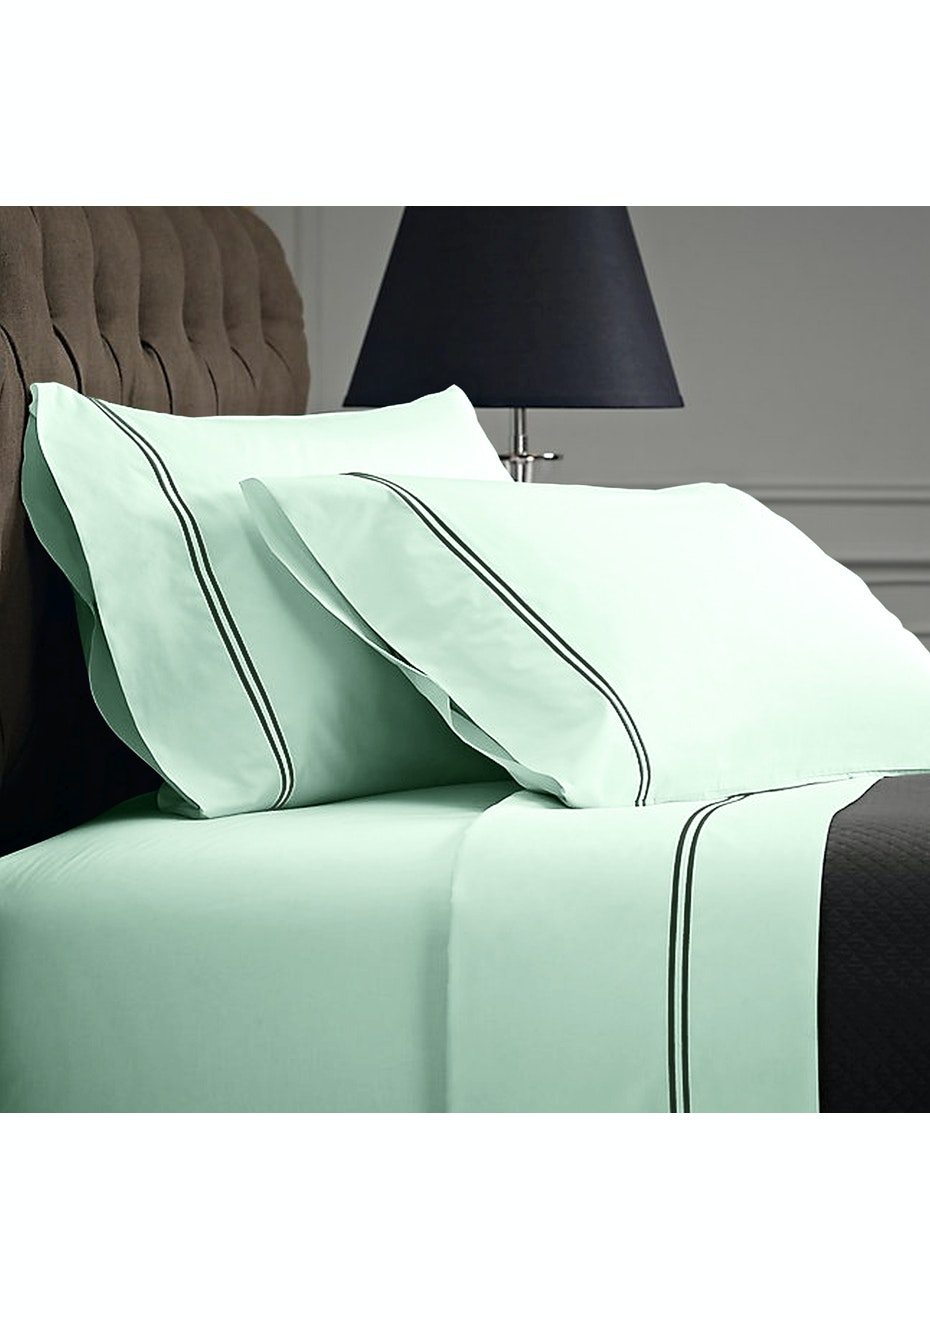 Style & Co 1000 Thread count Egyptian Cotton Hotel Collection Sorrento Sheet sets King Mist